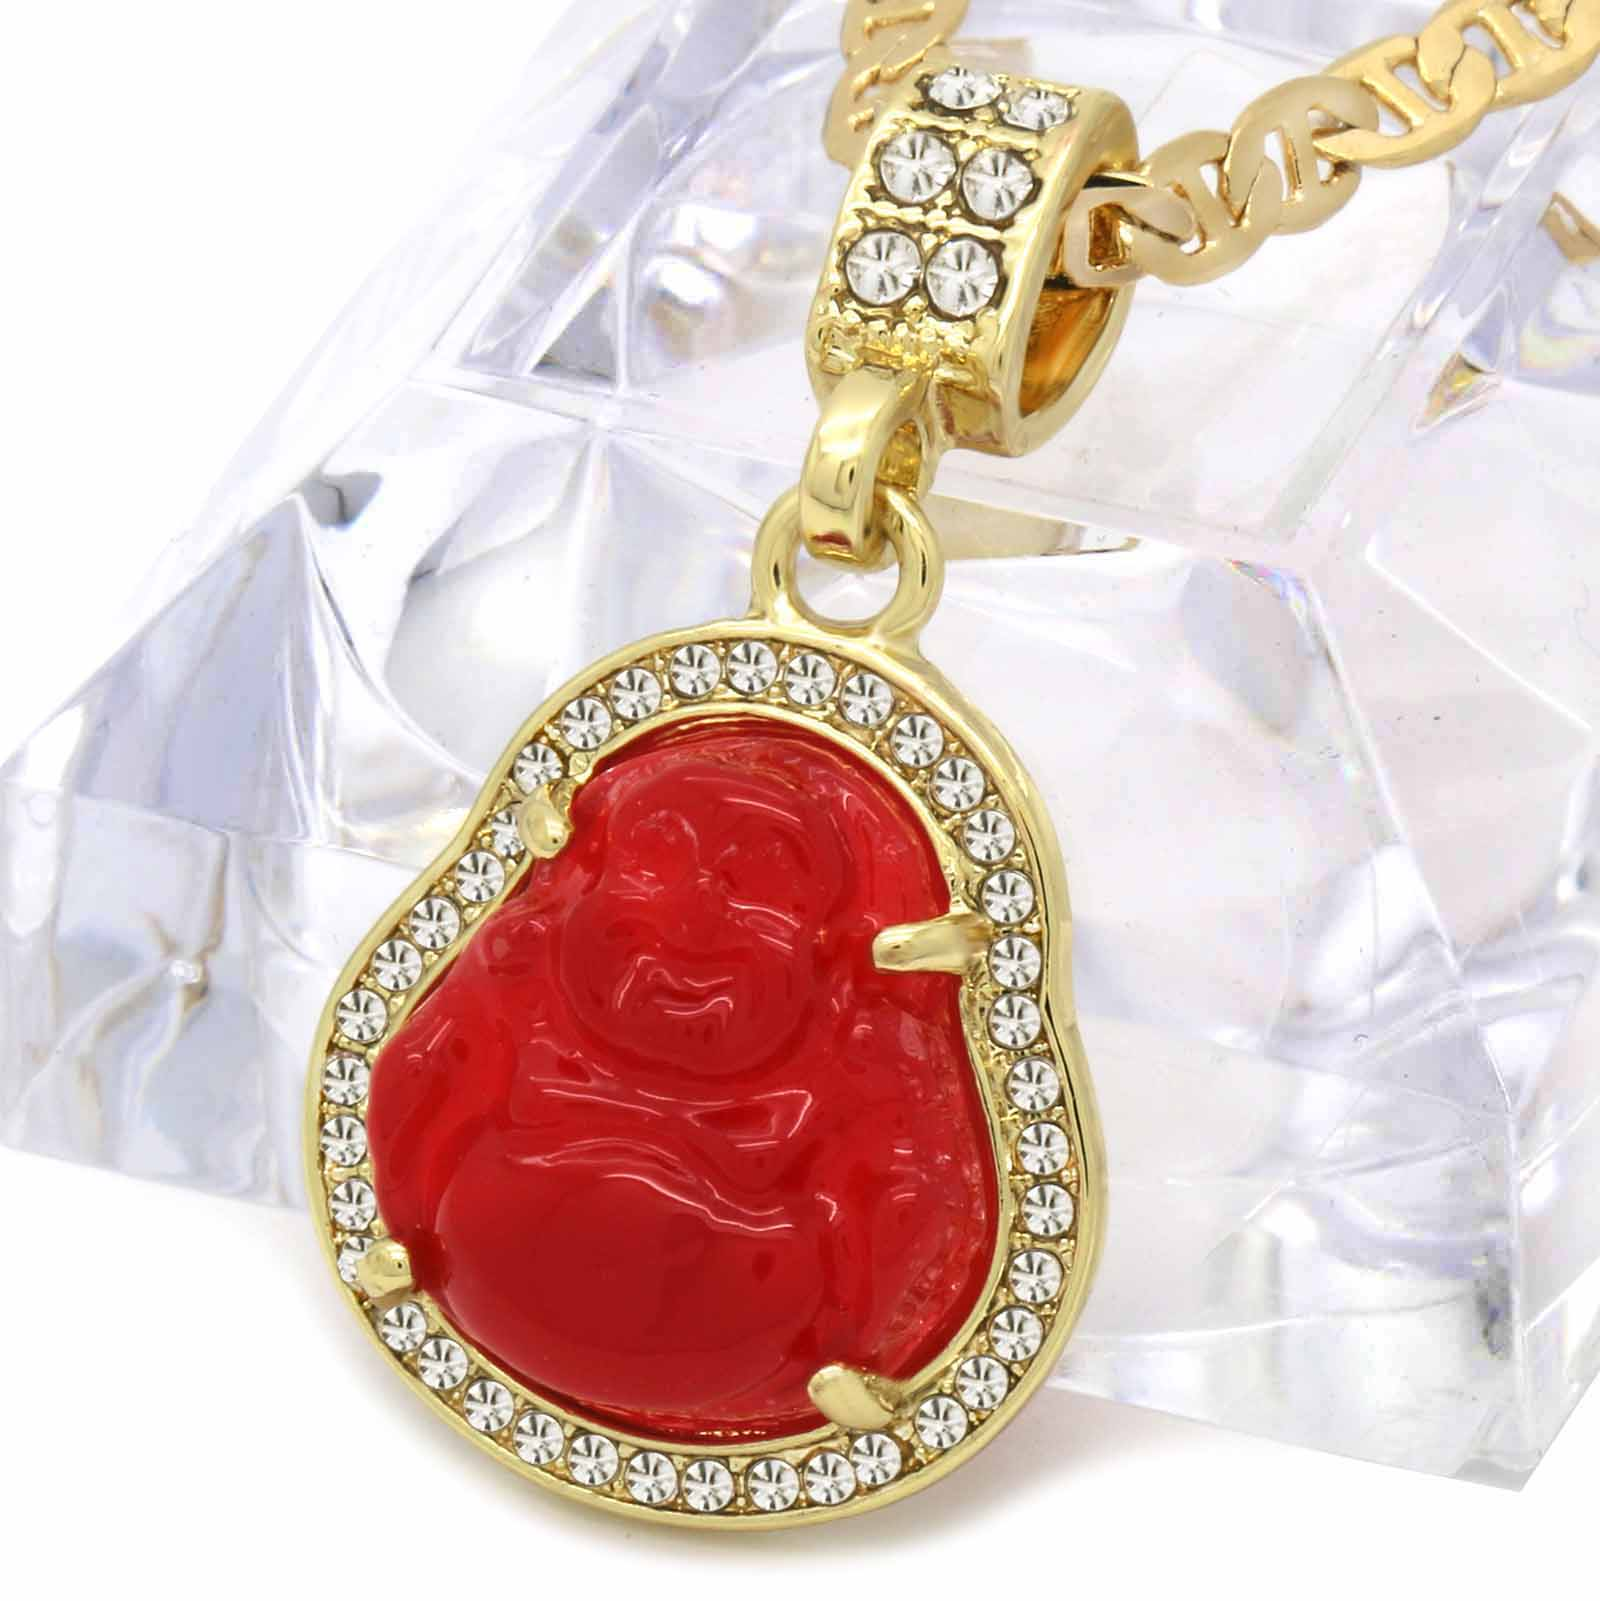 BUDDHA PENDANT ON GUCCI CHAIN